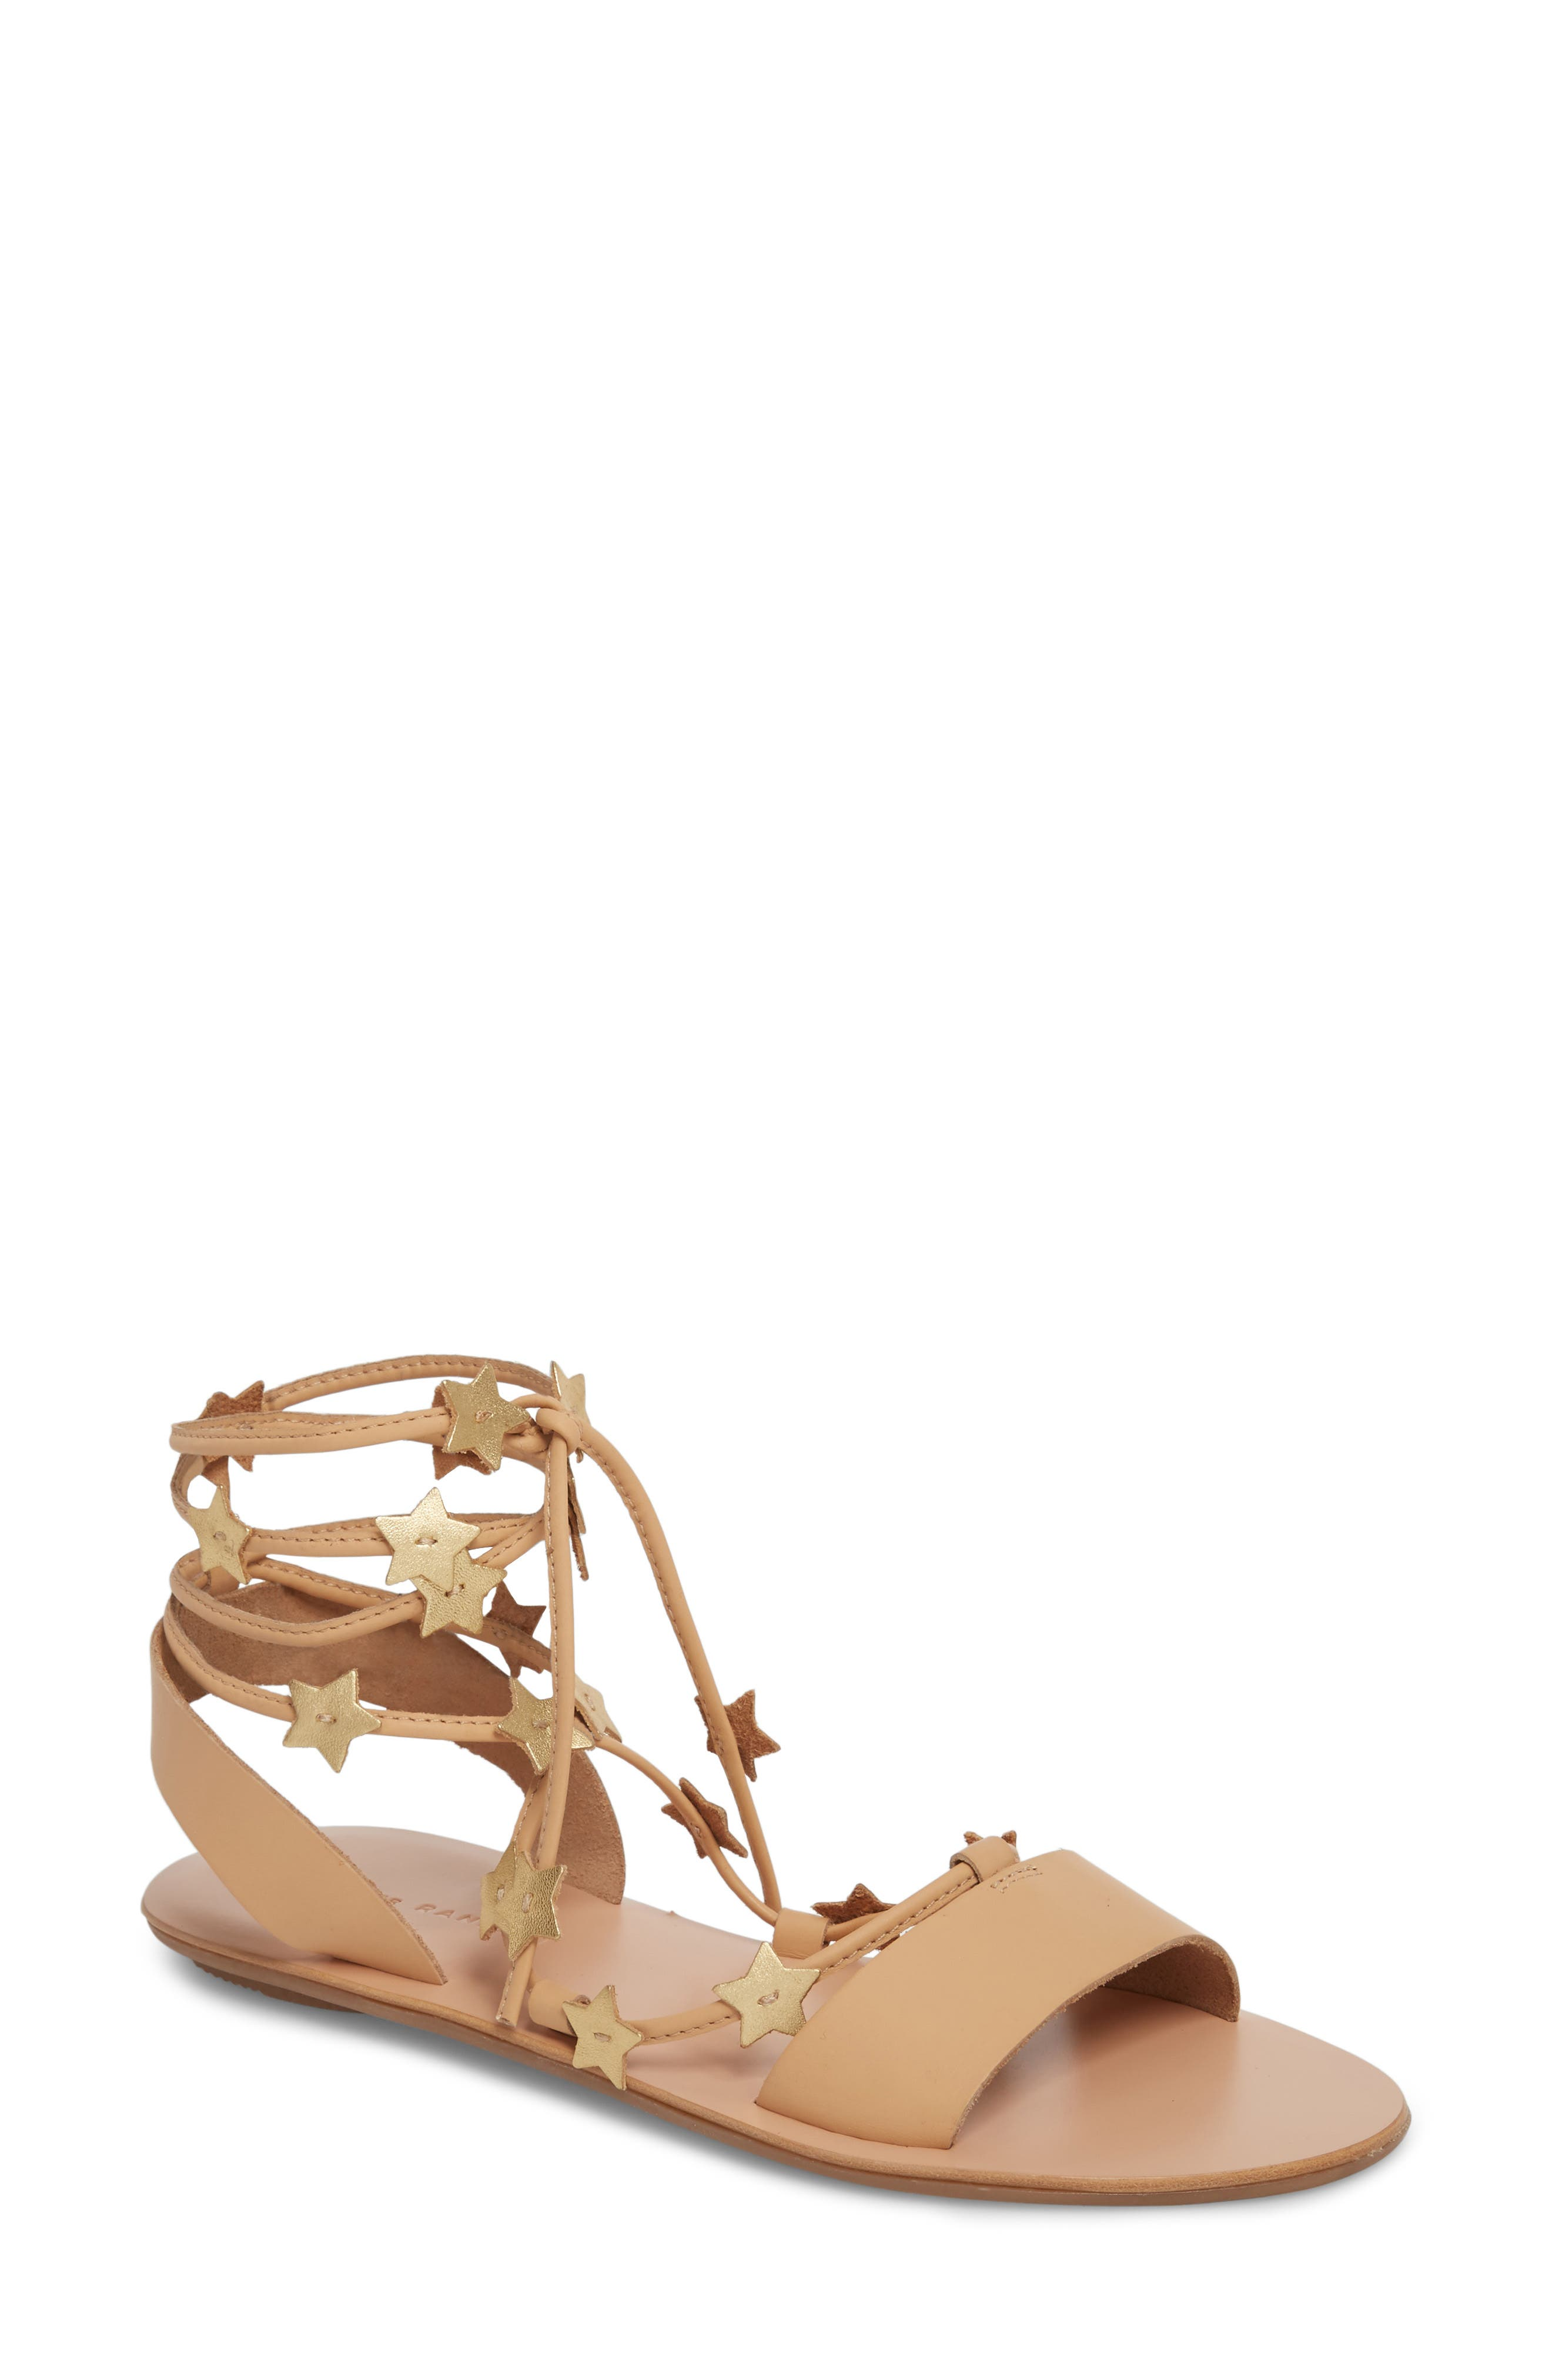 Starla Ankle Wrap Sandal,                         Main,                         color, WHEAT